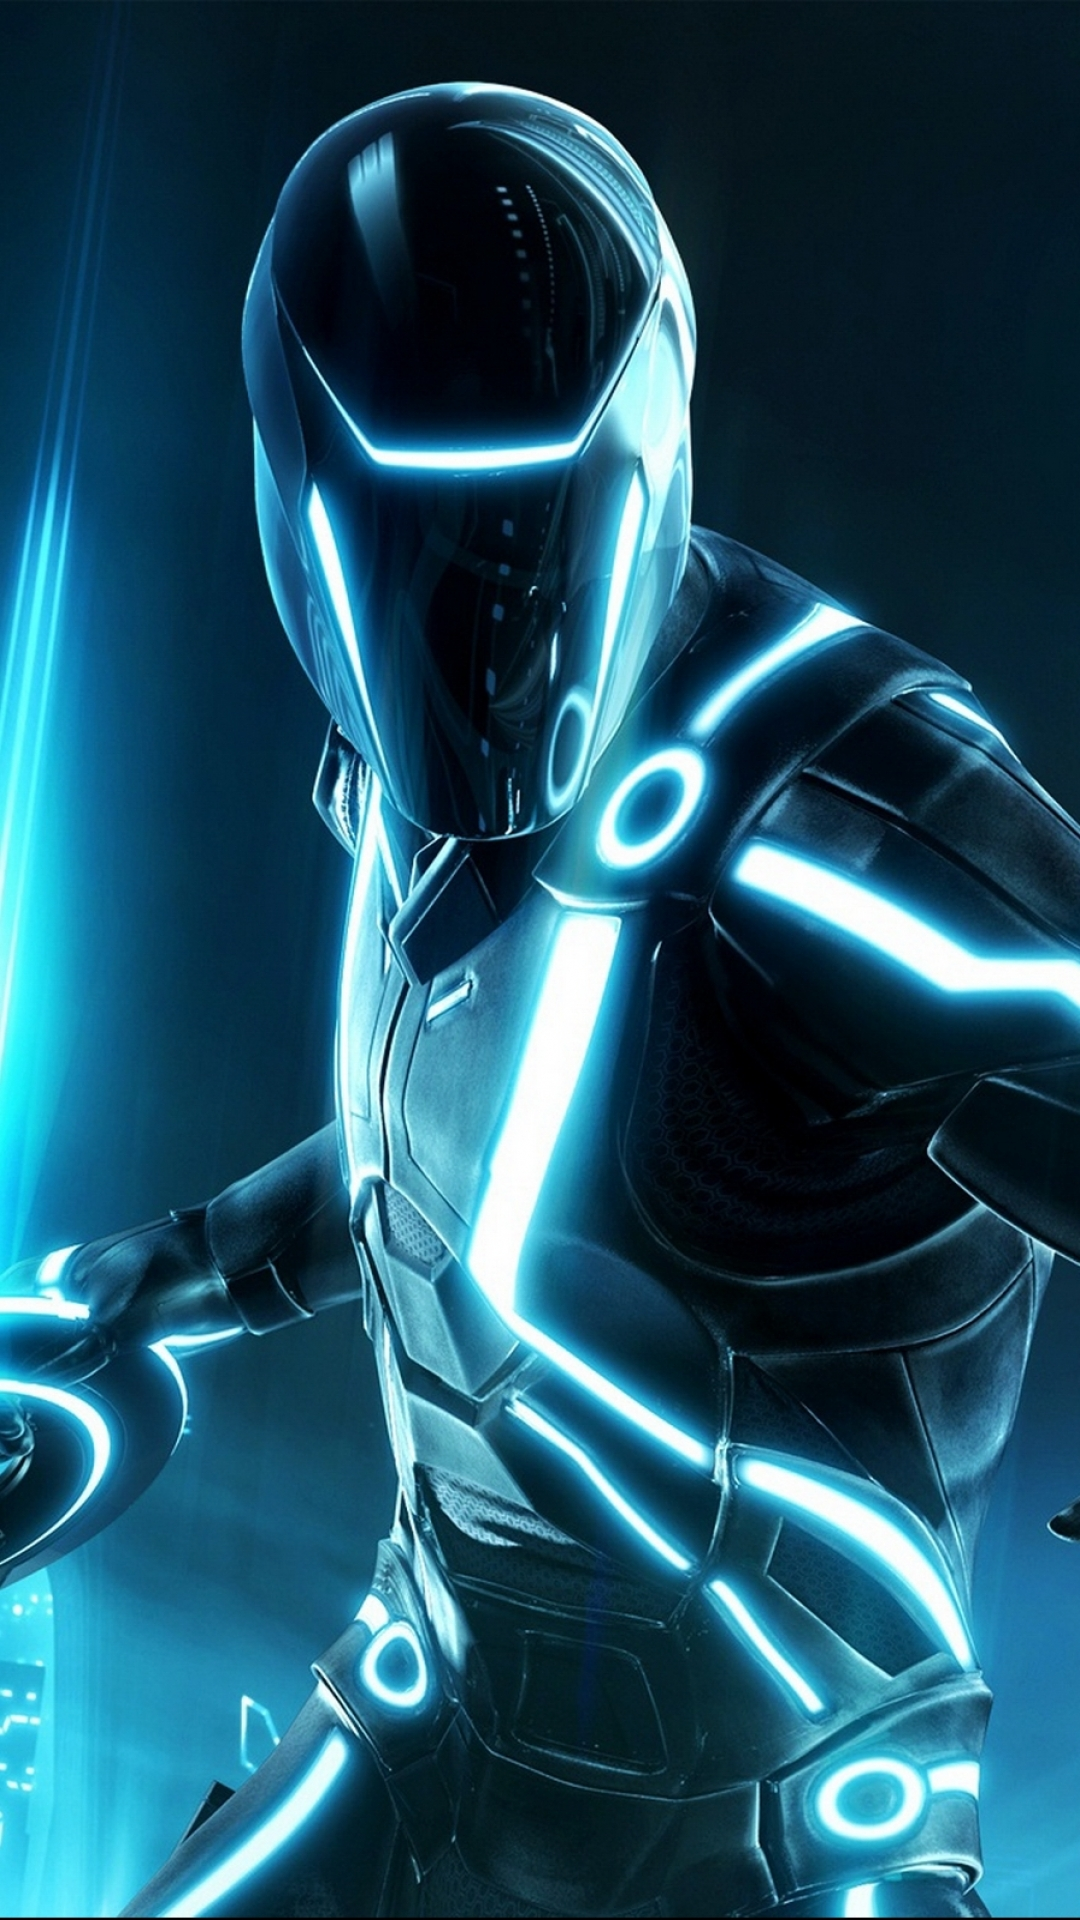 movie tron legacy 1080x1920 wallpaper id 74465 mobile abyss